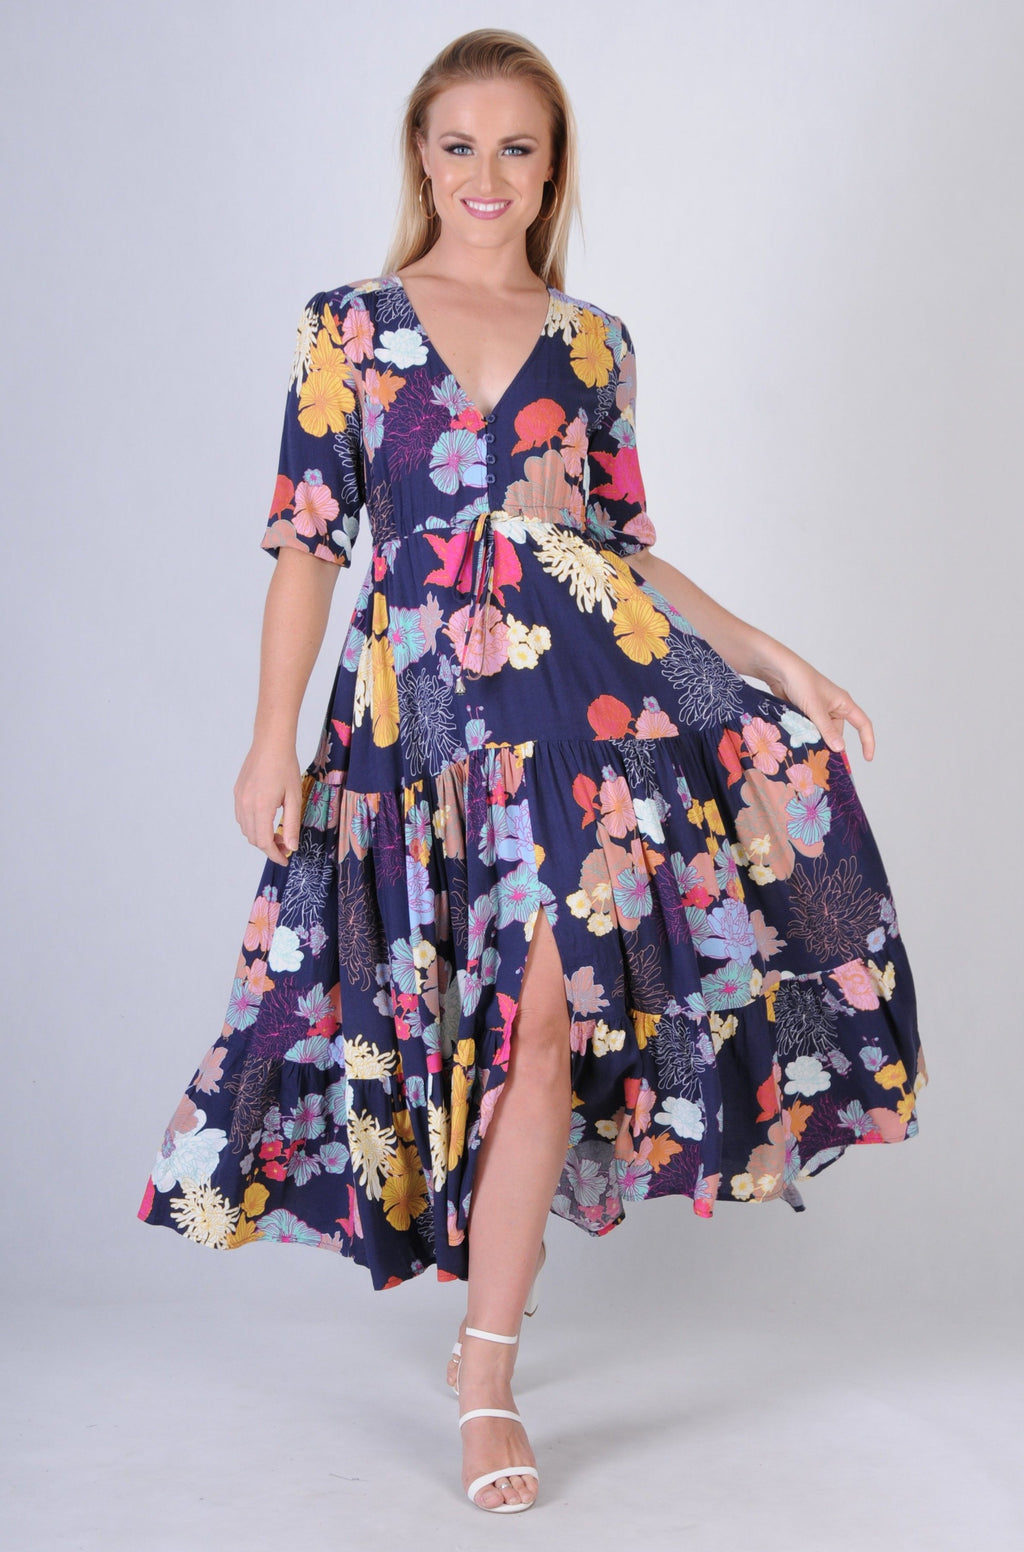 VJHD234 - LULU DRESS - PICASSO PETAL